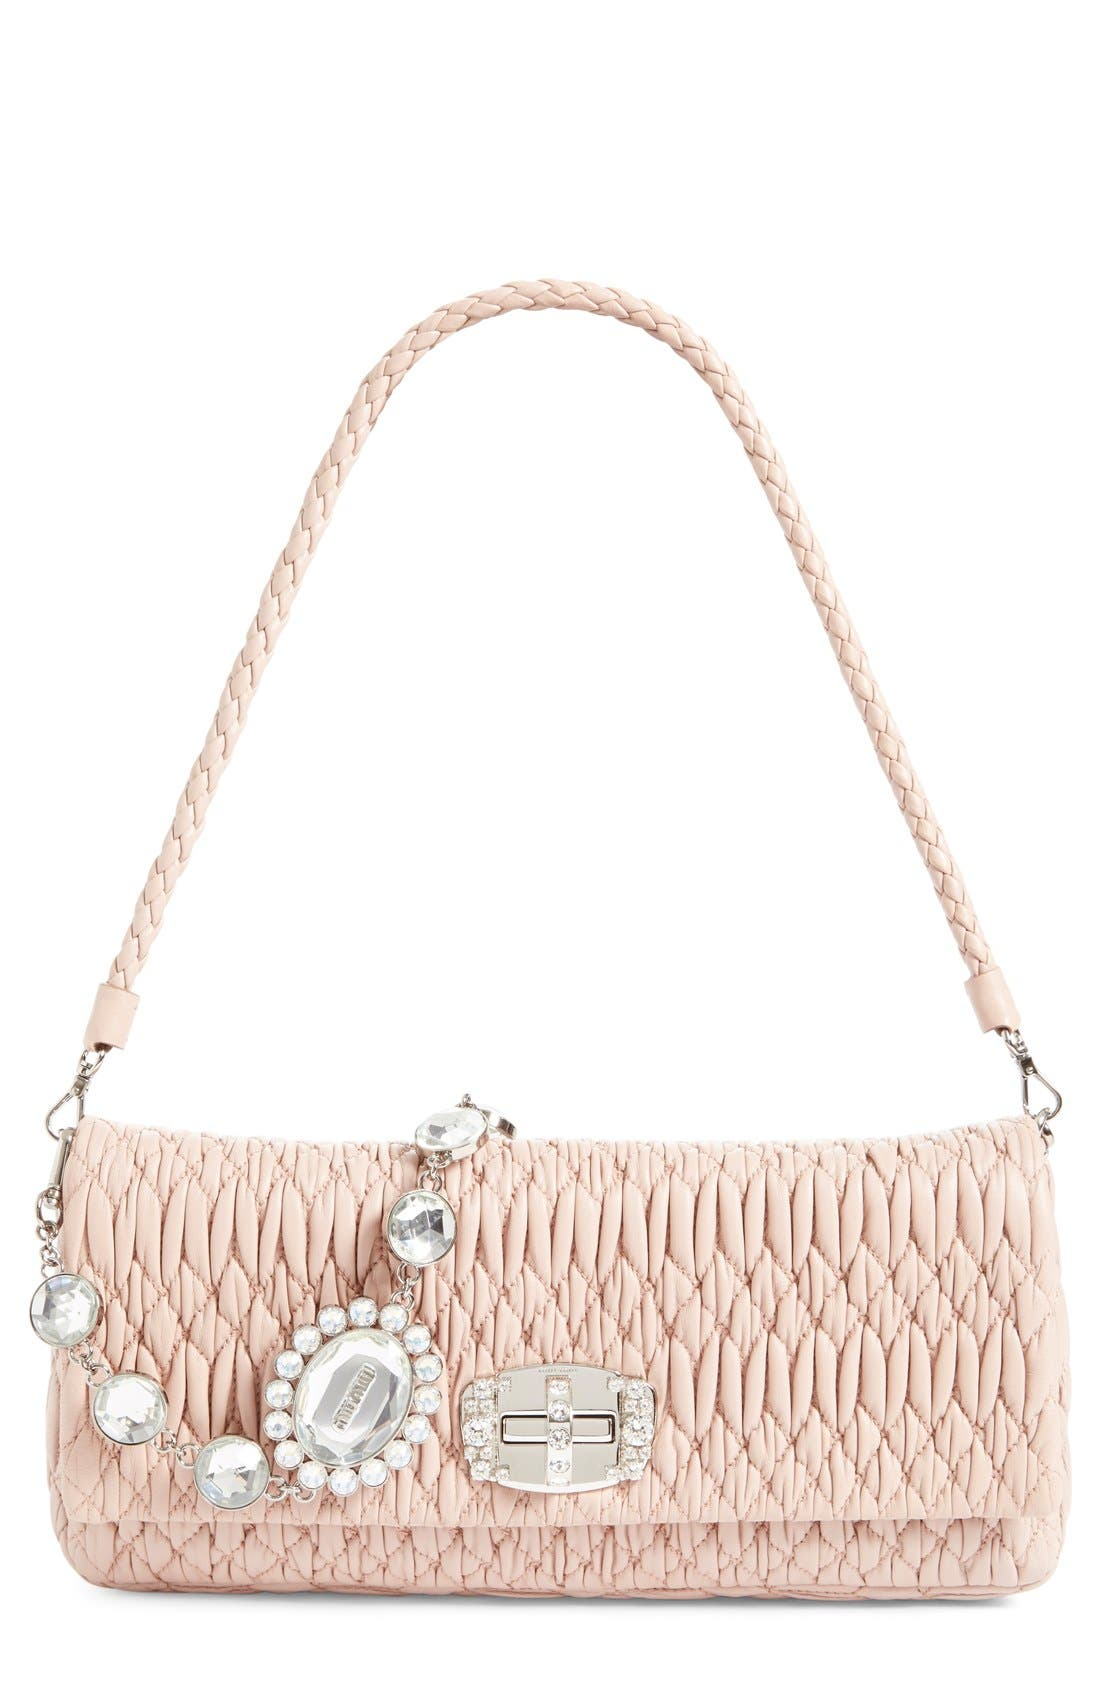 Miu MiuMedium Trunk shoulder bag